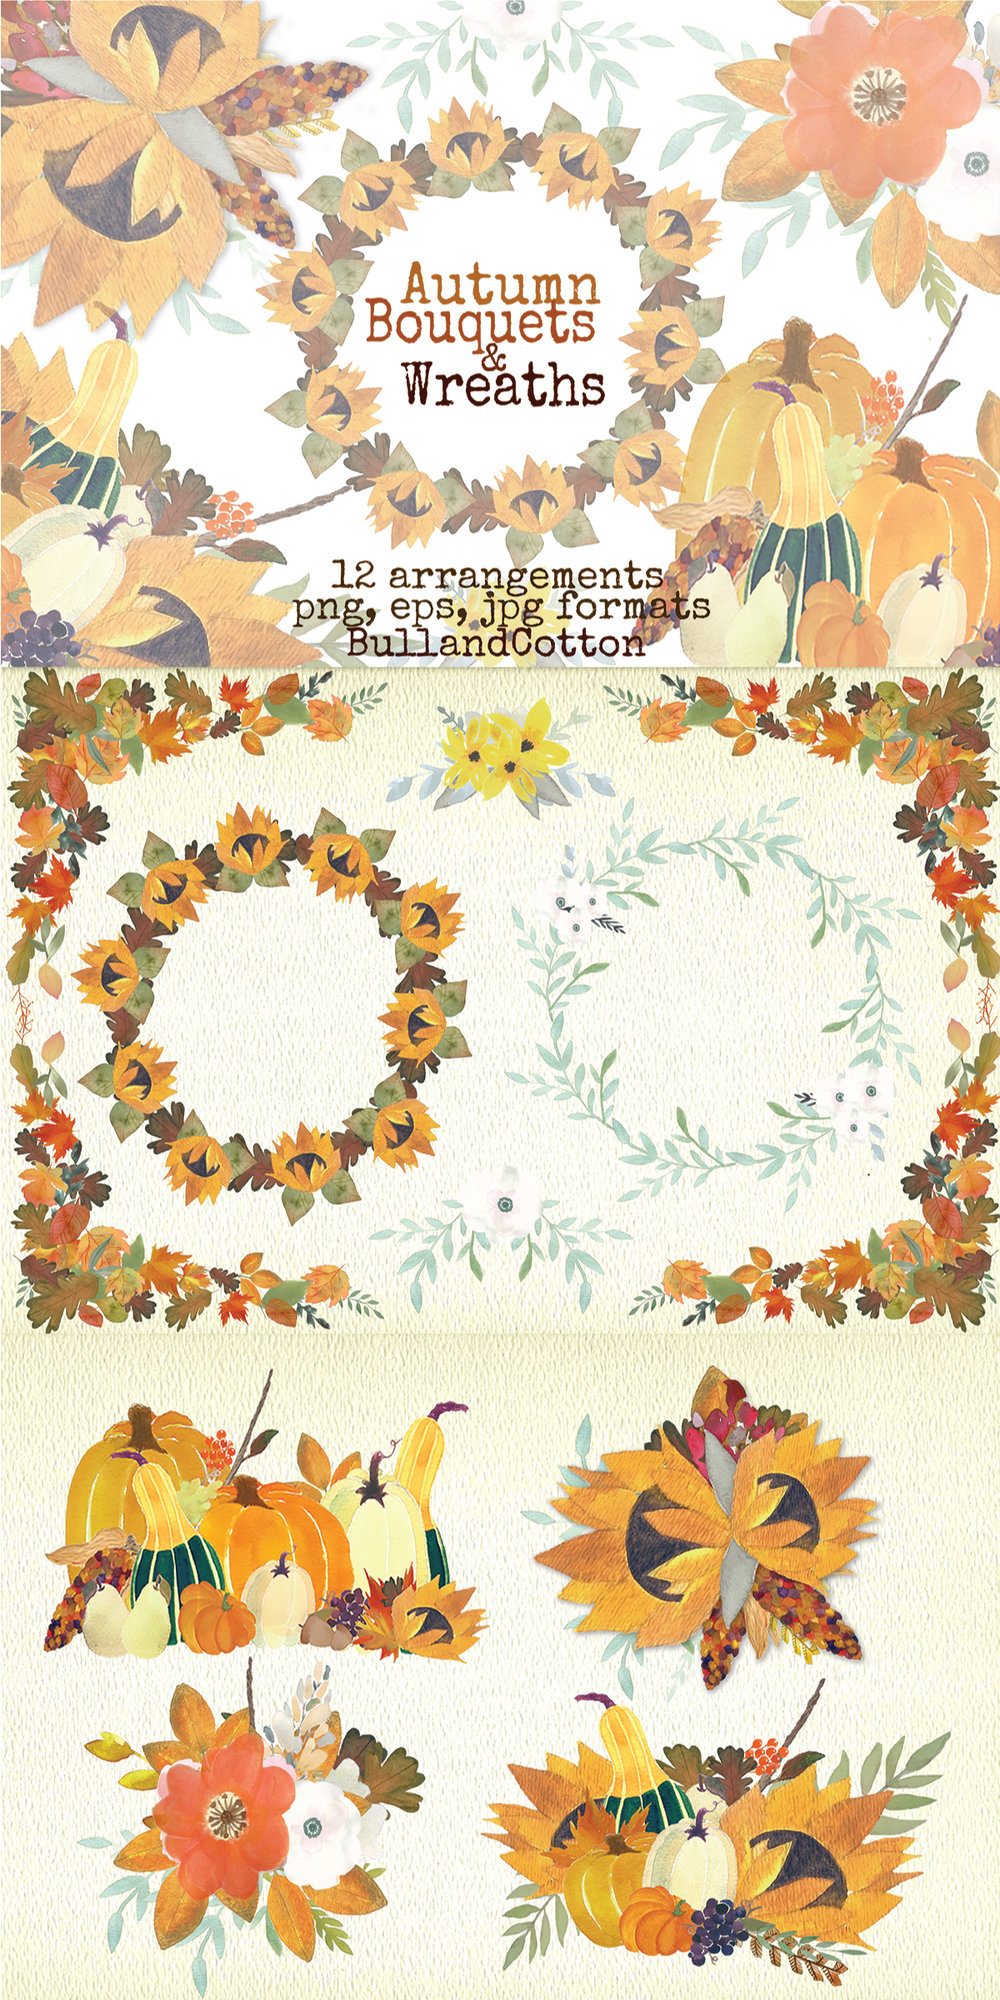 Autumn Bouquet Free Watercolor Illustrations